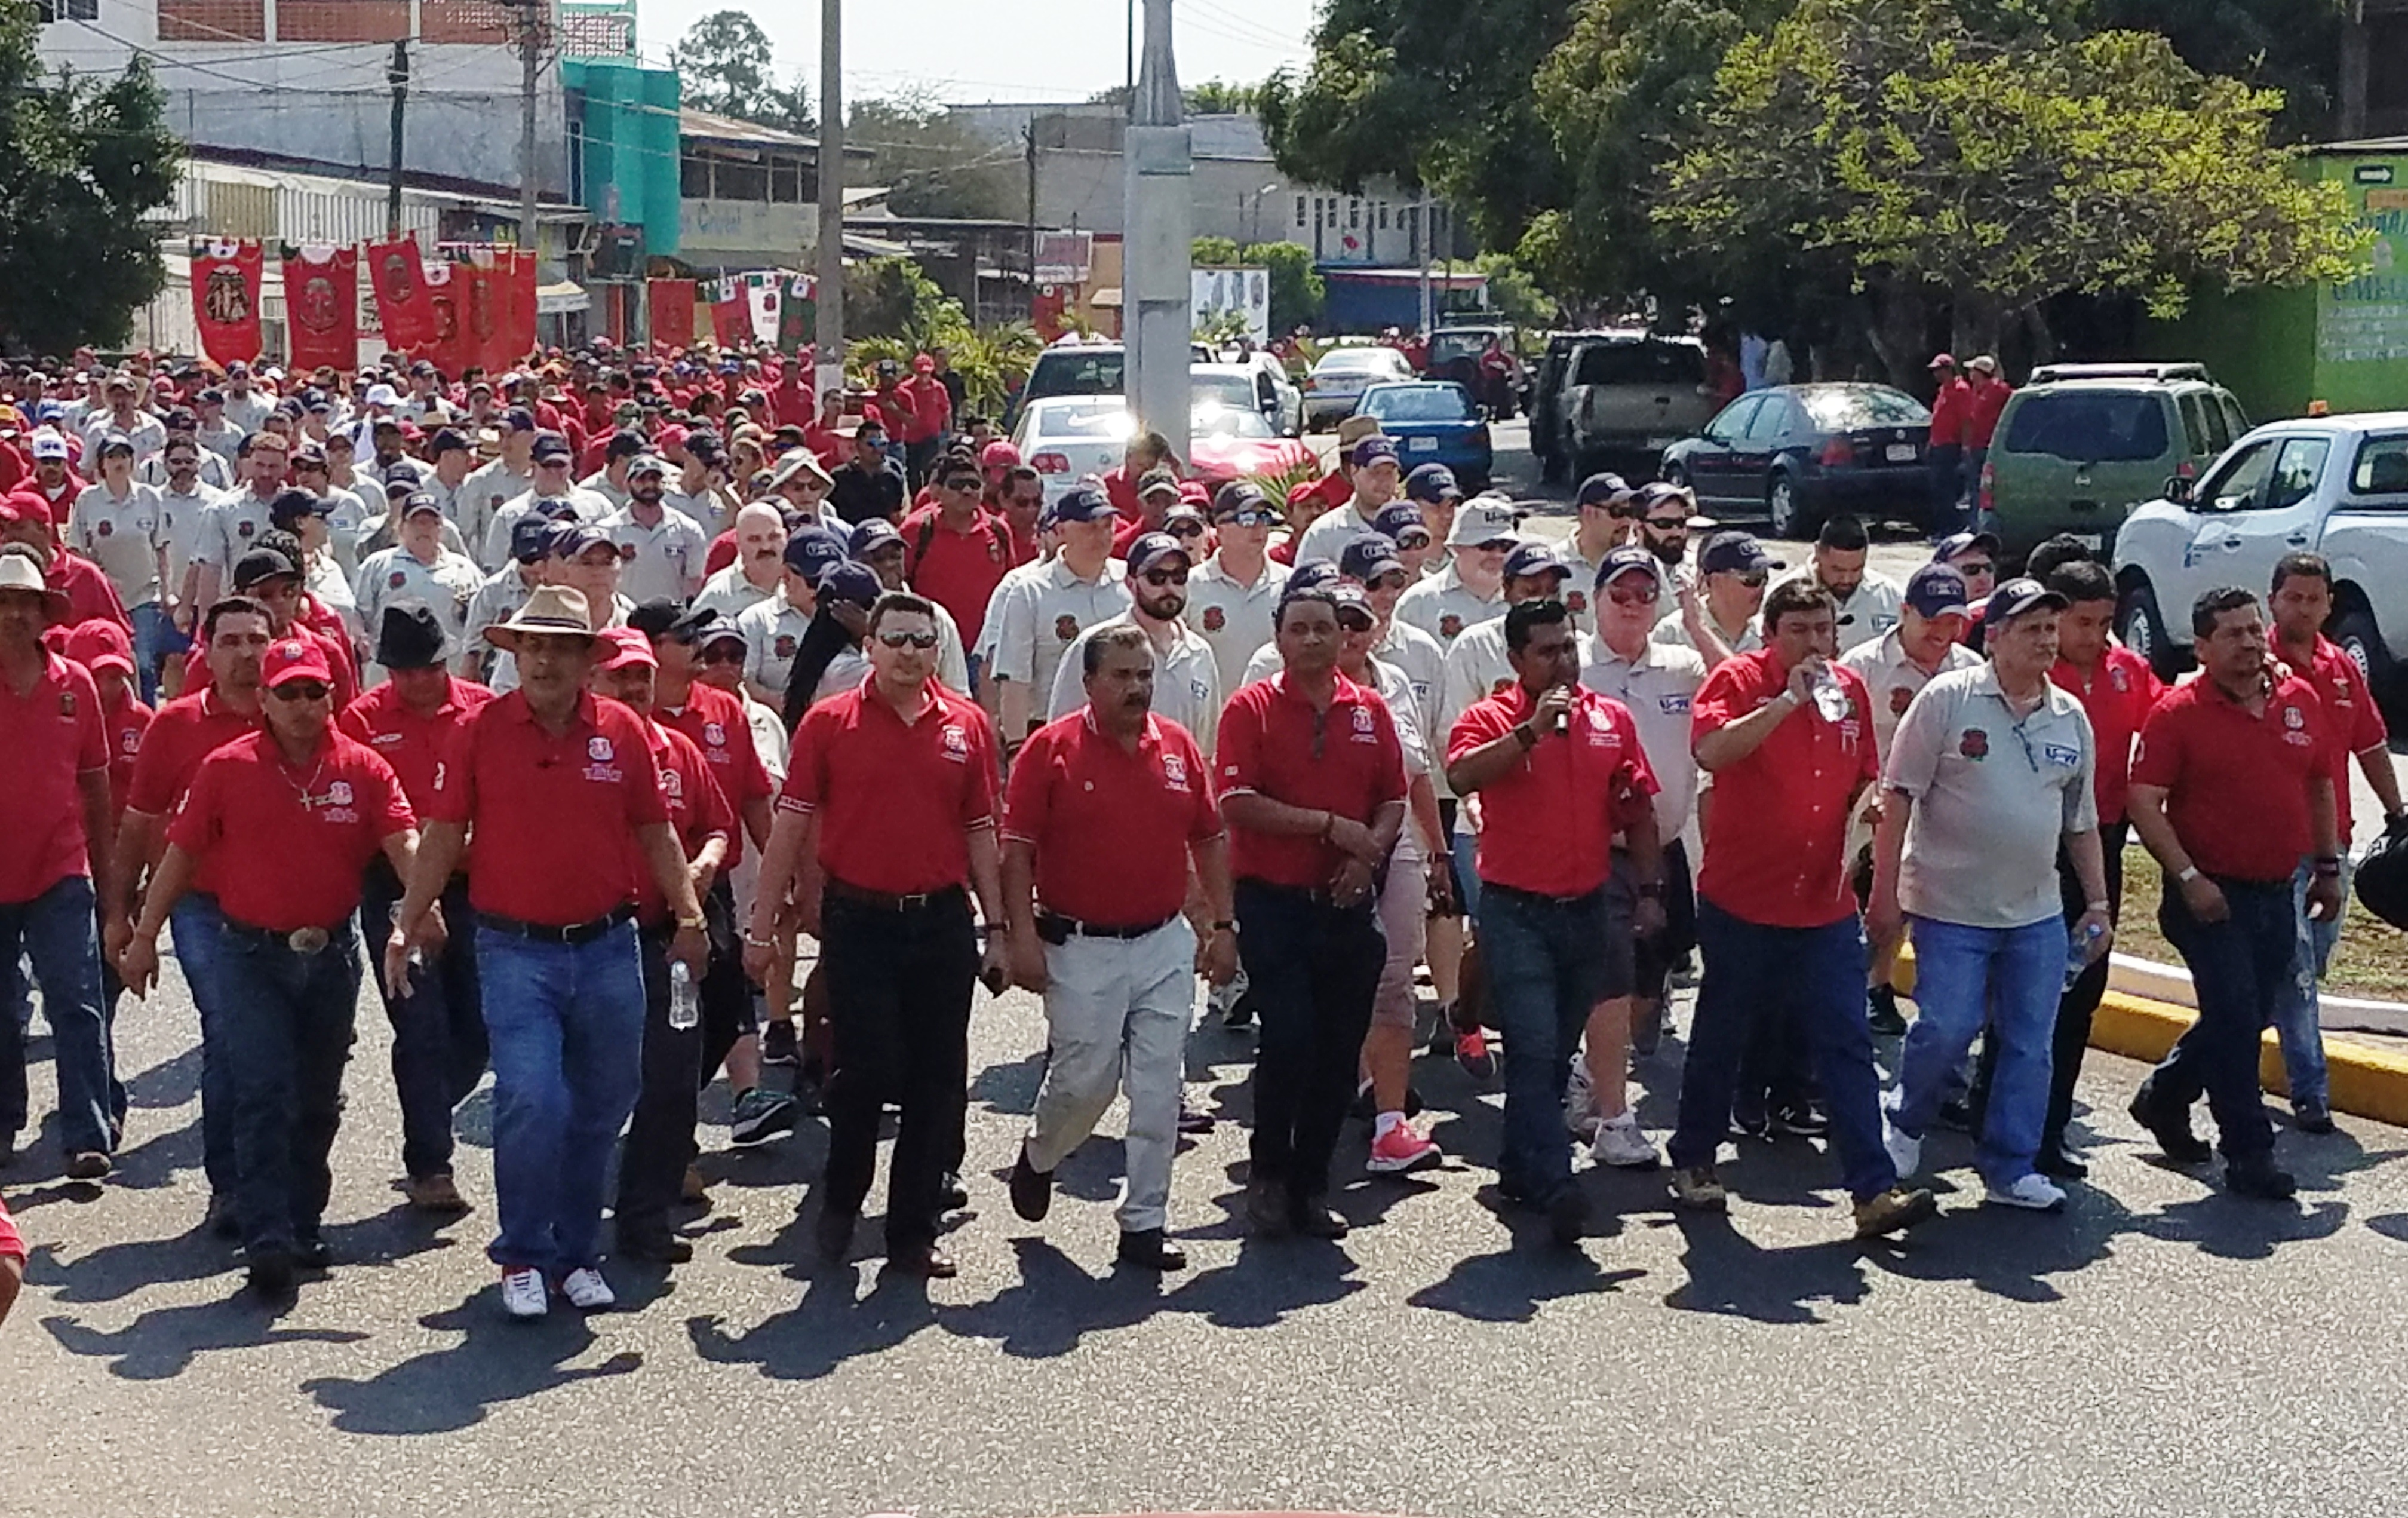 USW, Unite March in Solidarity with Mexican Steelworkers